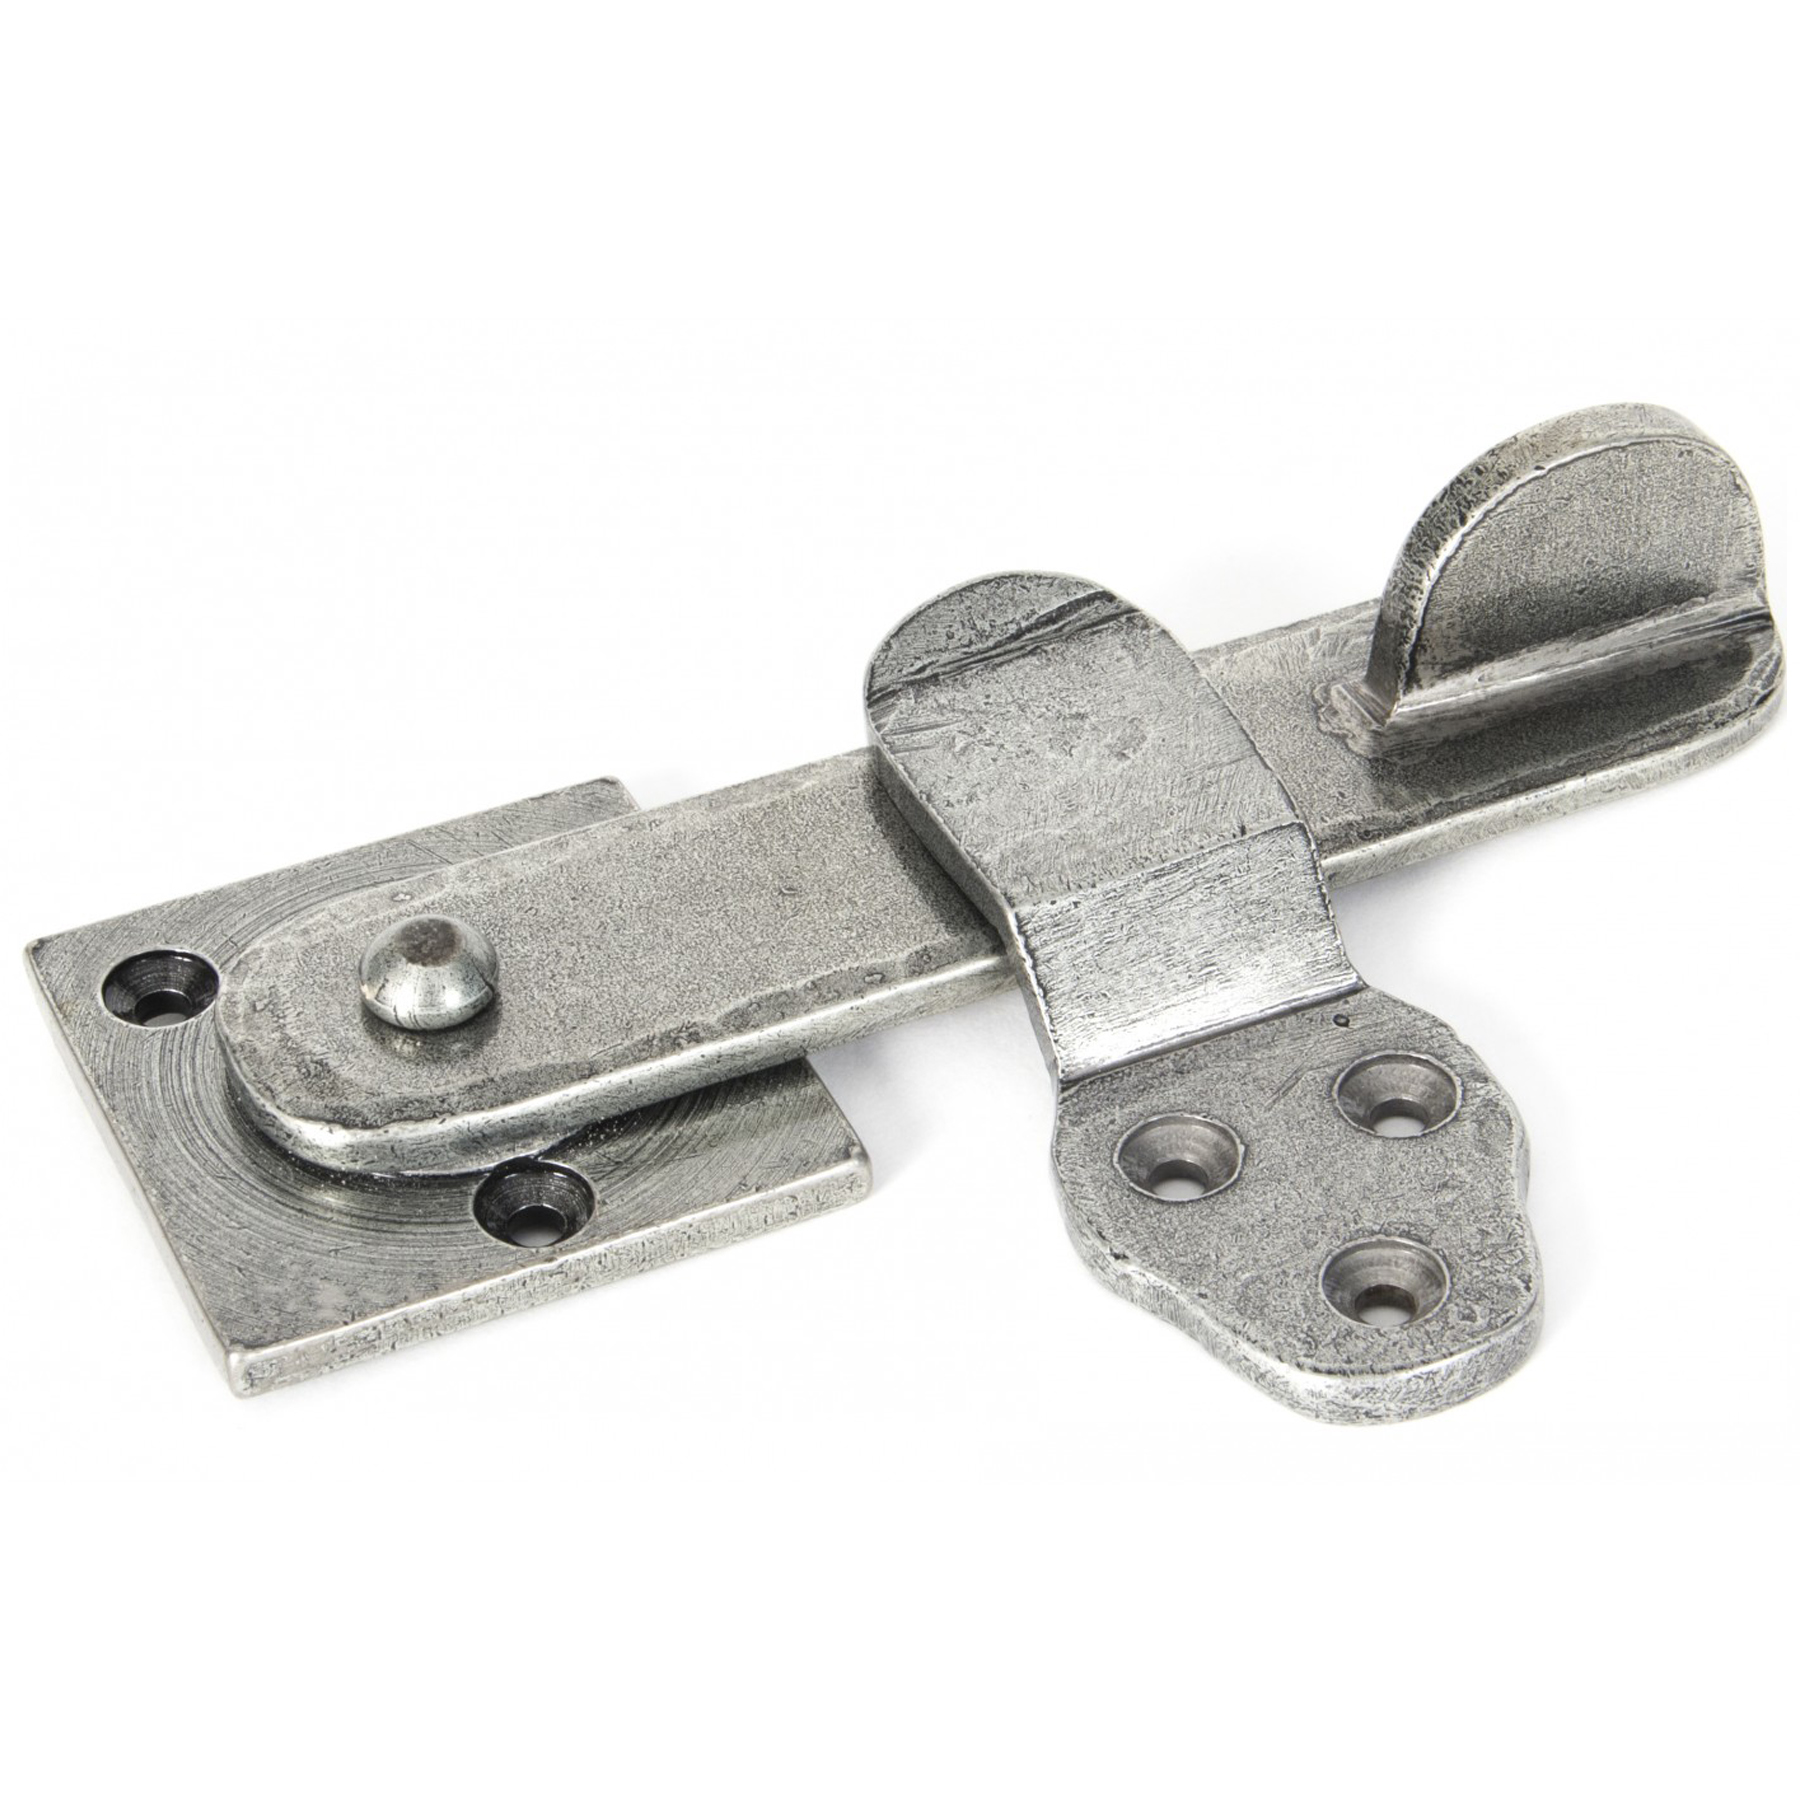 Patina Privacy Latch Set, Pewter - 33393